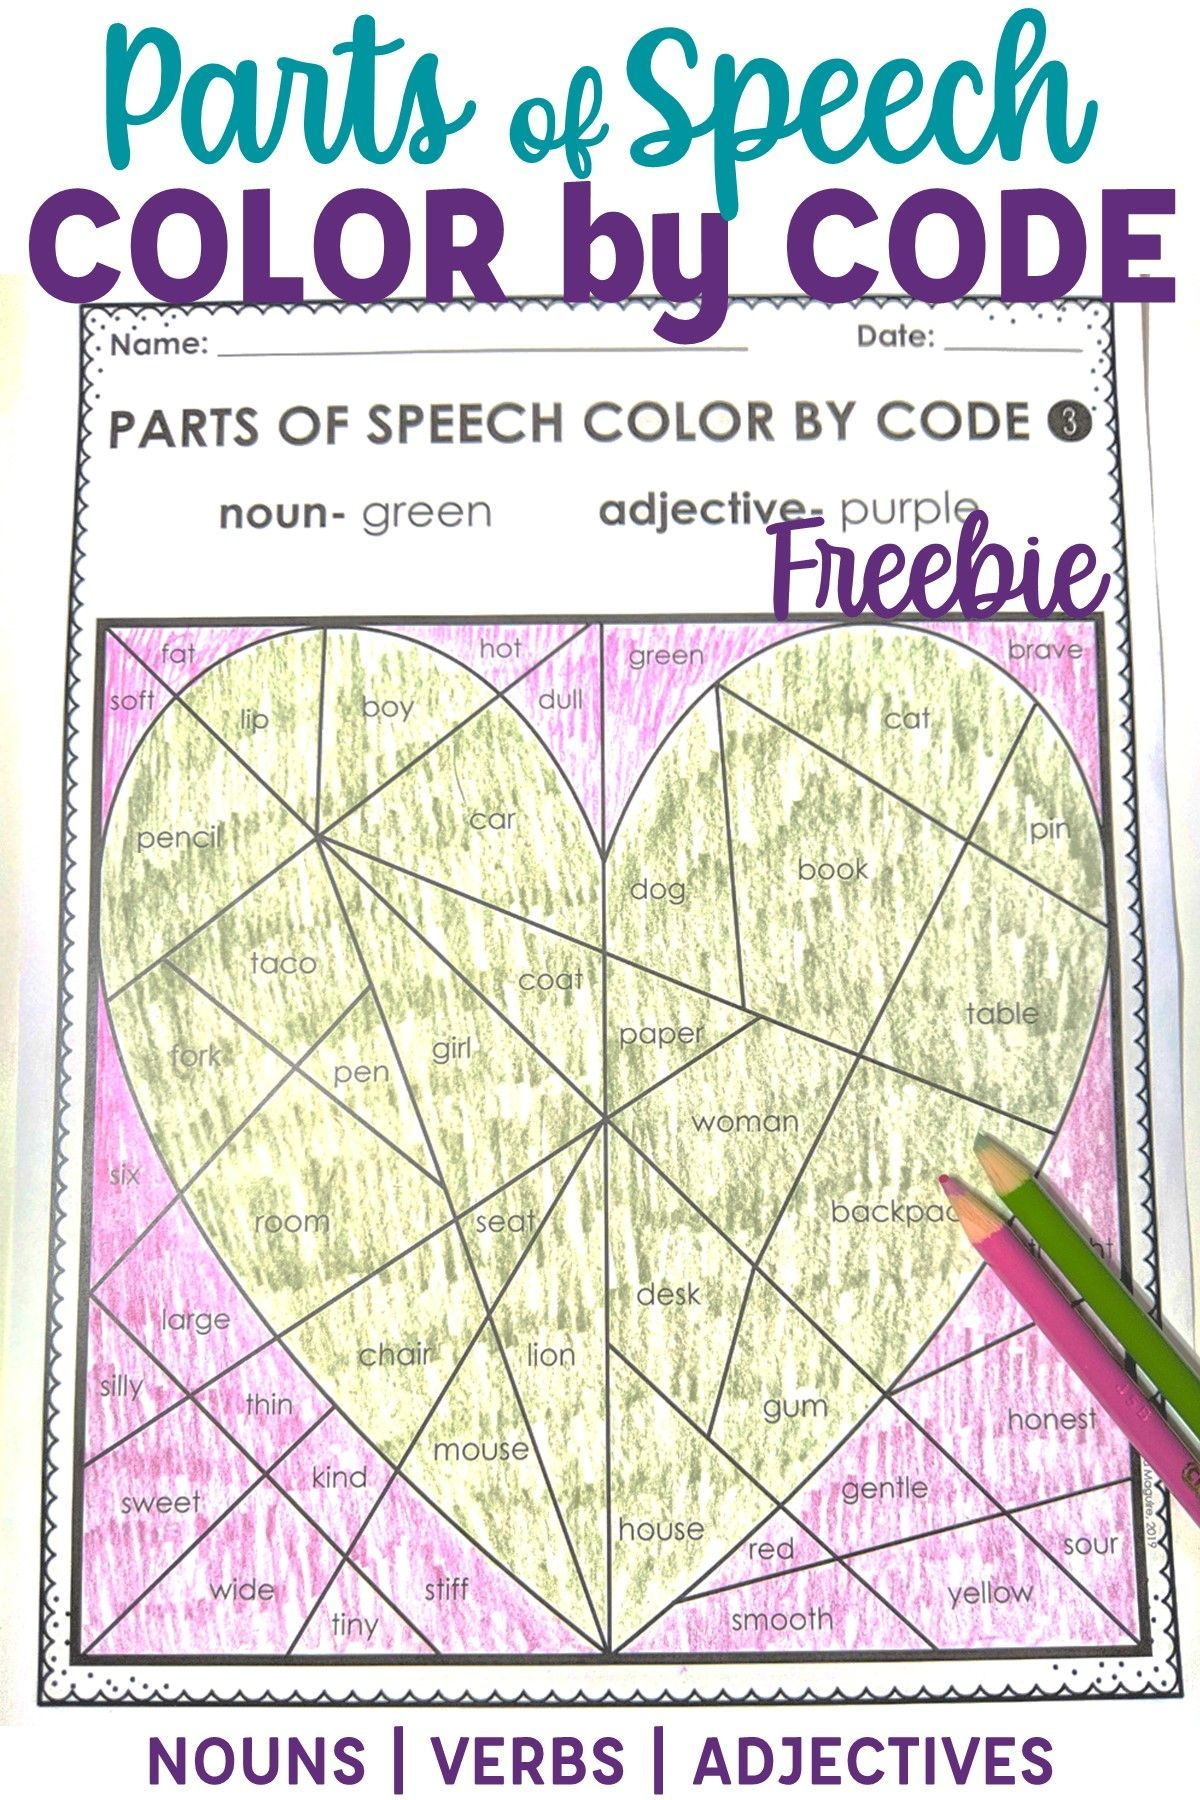 Parts Of Speech Color By Codes Freebie Grammar Coloring Pages Middle School Fun Parts Of Speech Middle School Grammar Worksheets [ 1800 x 1200 Pixel ]